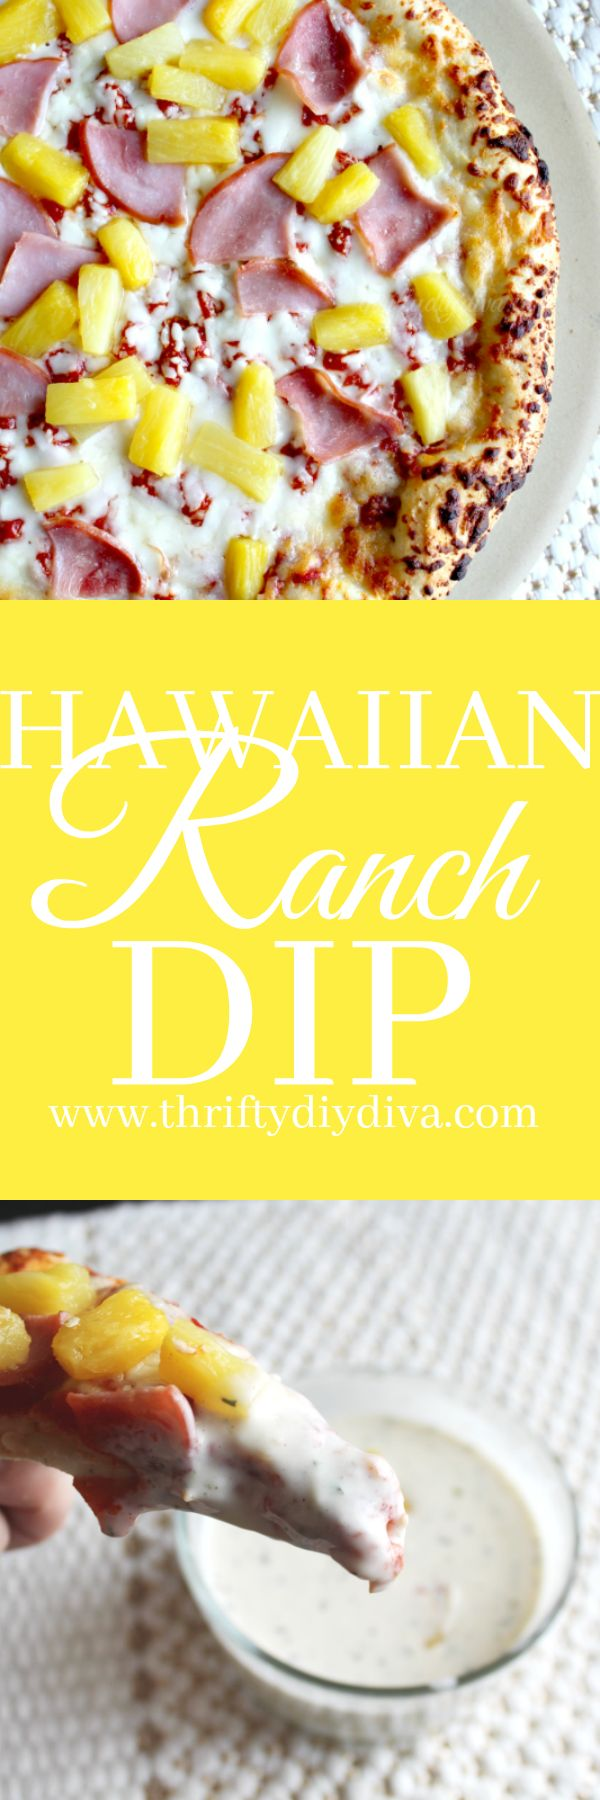 AD Homemade Pineapple Ranch Dressing (Hawaiian Dip) #FreschettaFresh @walmart  - Pizza + dipping sauce? Yes, please! It's not just for breadsticks, folks. Whip up my delicious Pineapple Ranch Dressing Dip recipe, which pairs perfectly with Canadian bacon and pineapple pizza.